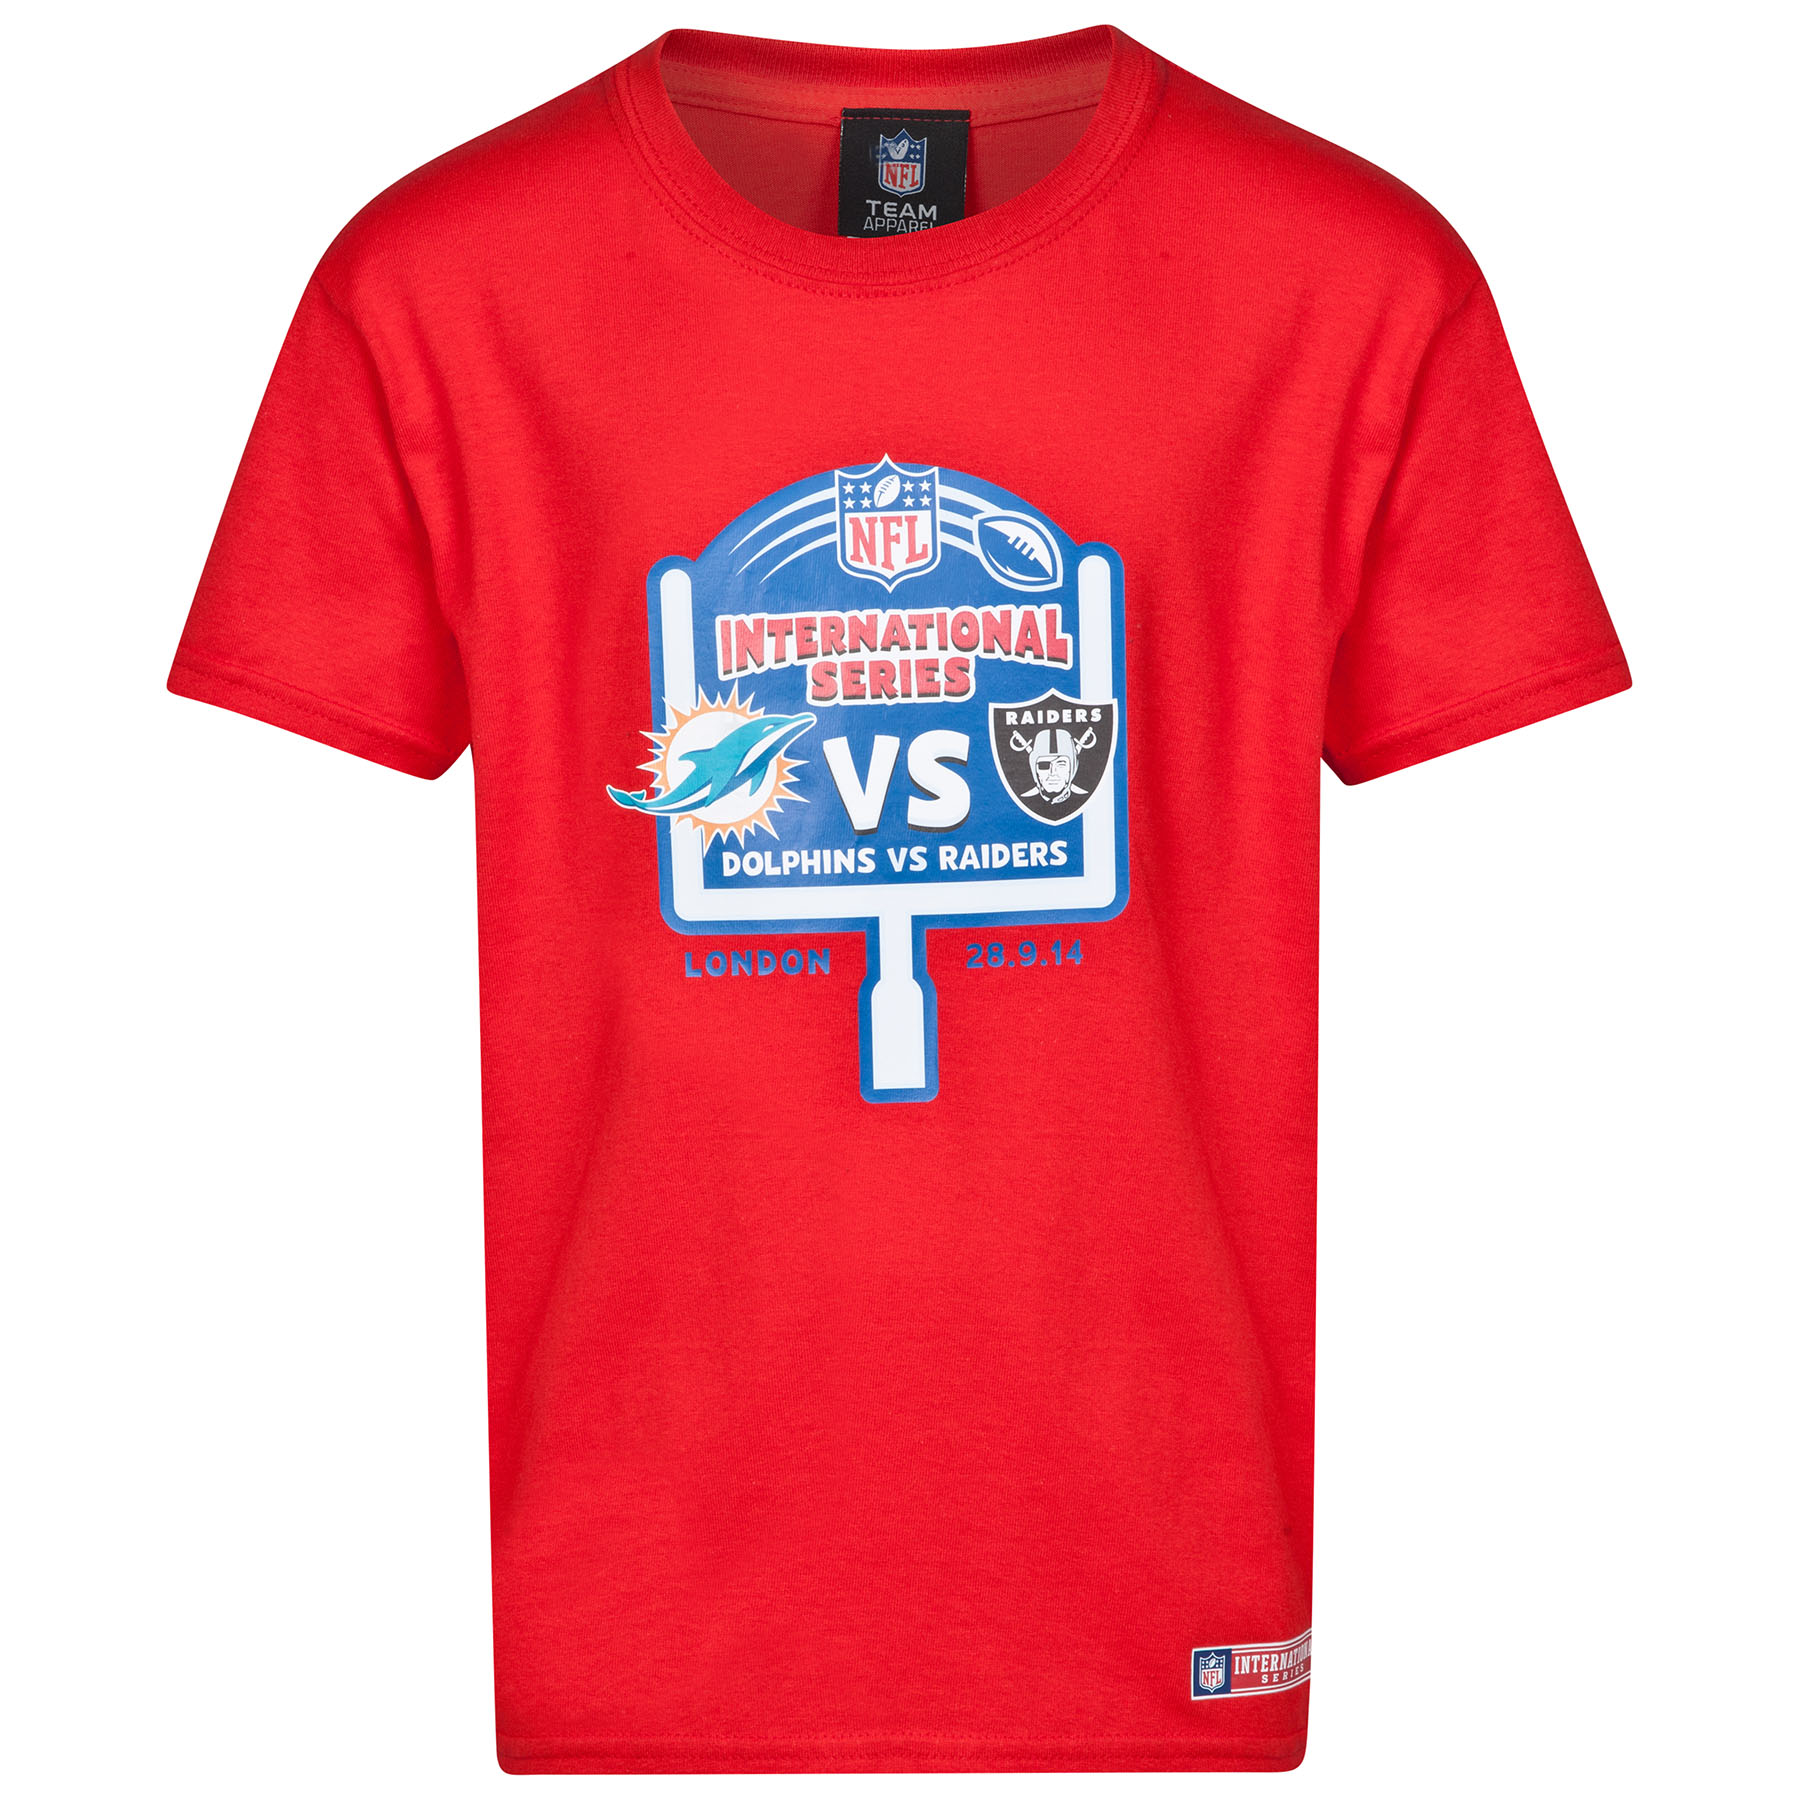 NFL International Series Dolphins VS Raiders 2014 Event T-Shirt - Kids